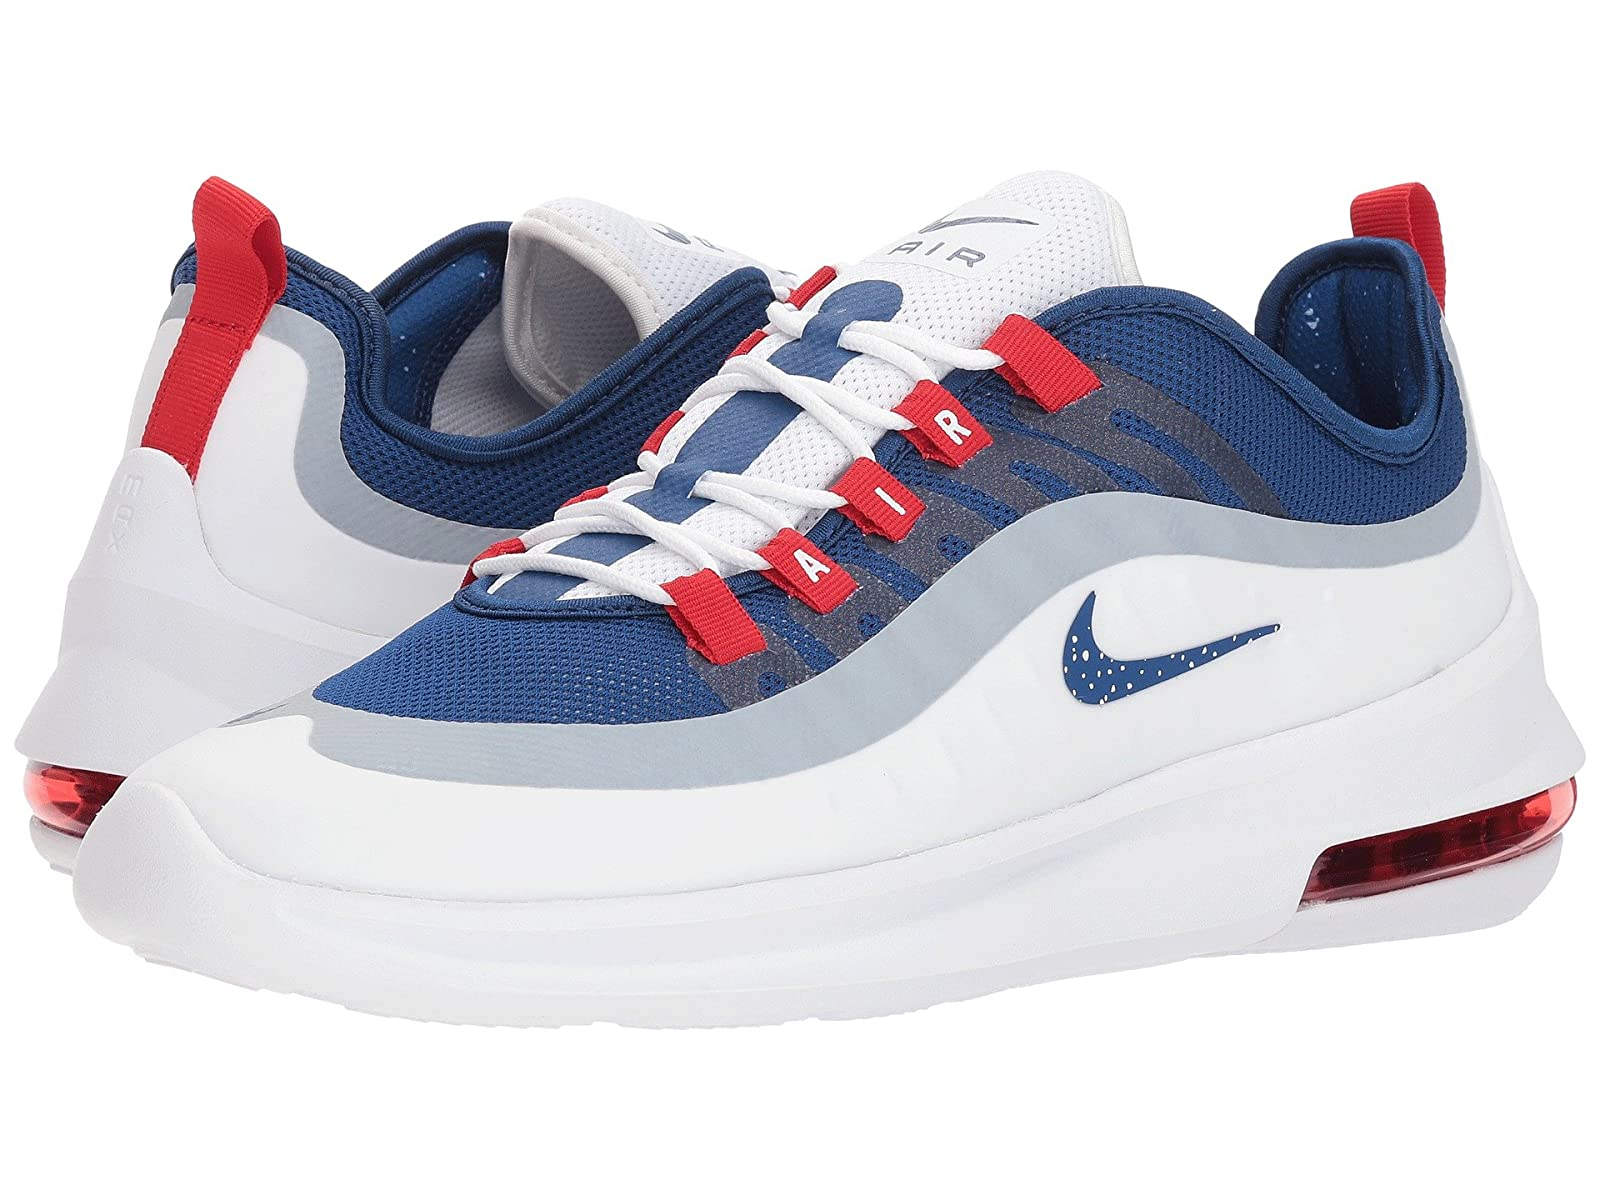 Nike Air Max AxisAtmospheric grades have affordable shoes